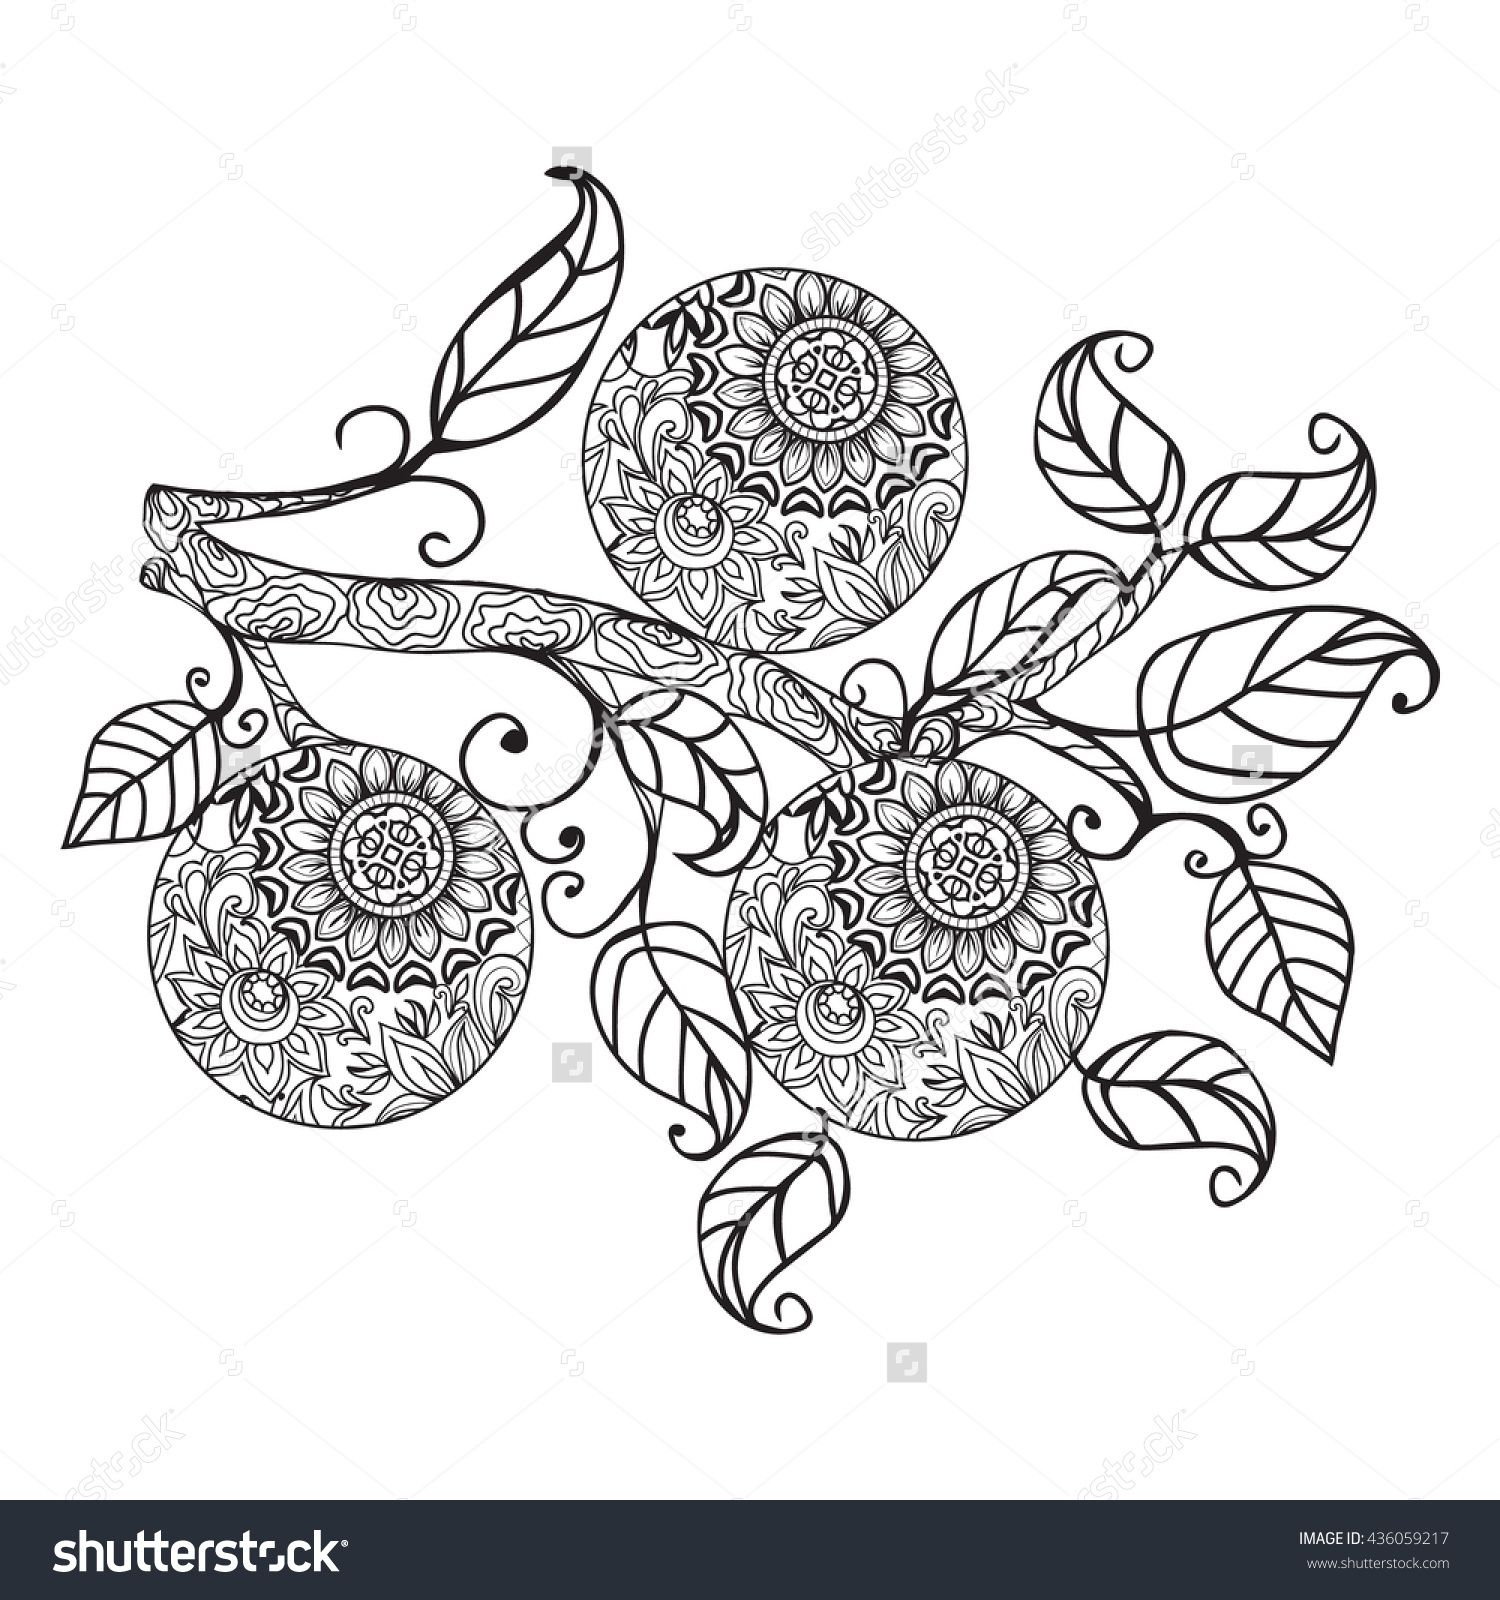 Vector Citrus Fruit Orange Food And Leaves Hand Drawn In Black White Outline